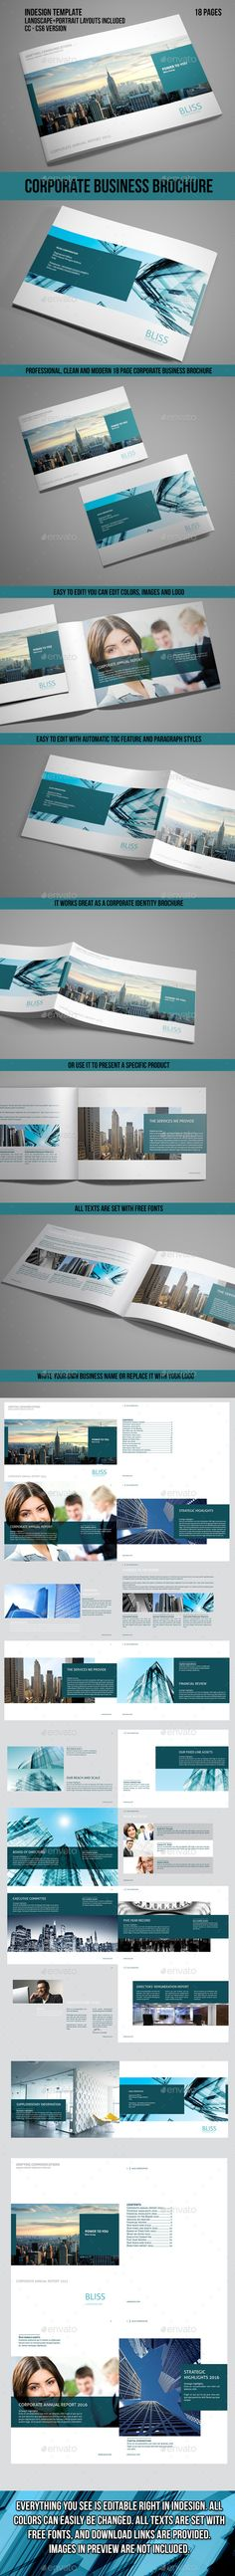 Corporate Business Brochure Indesign Template #design Download: http://graphicriver.net/item/corporate-business-brochure-indesign-template/13965135?ref=ksioks